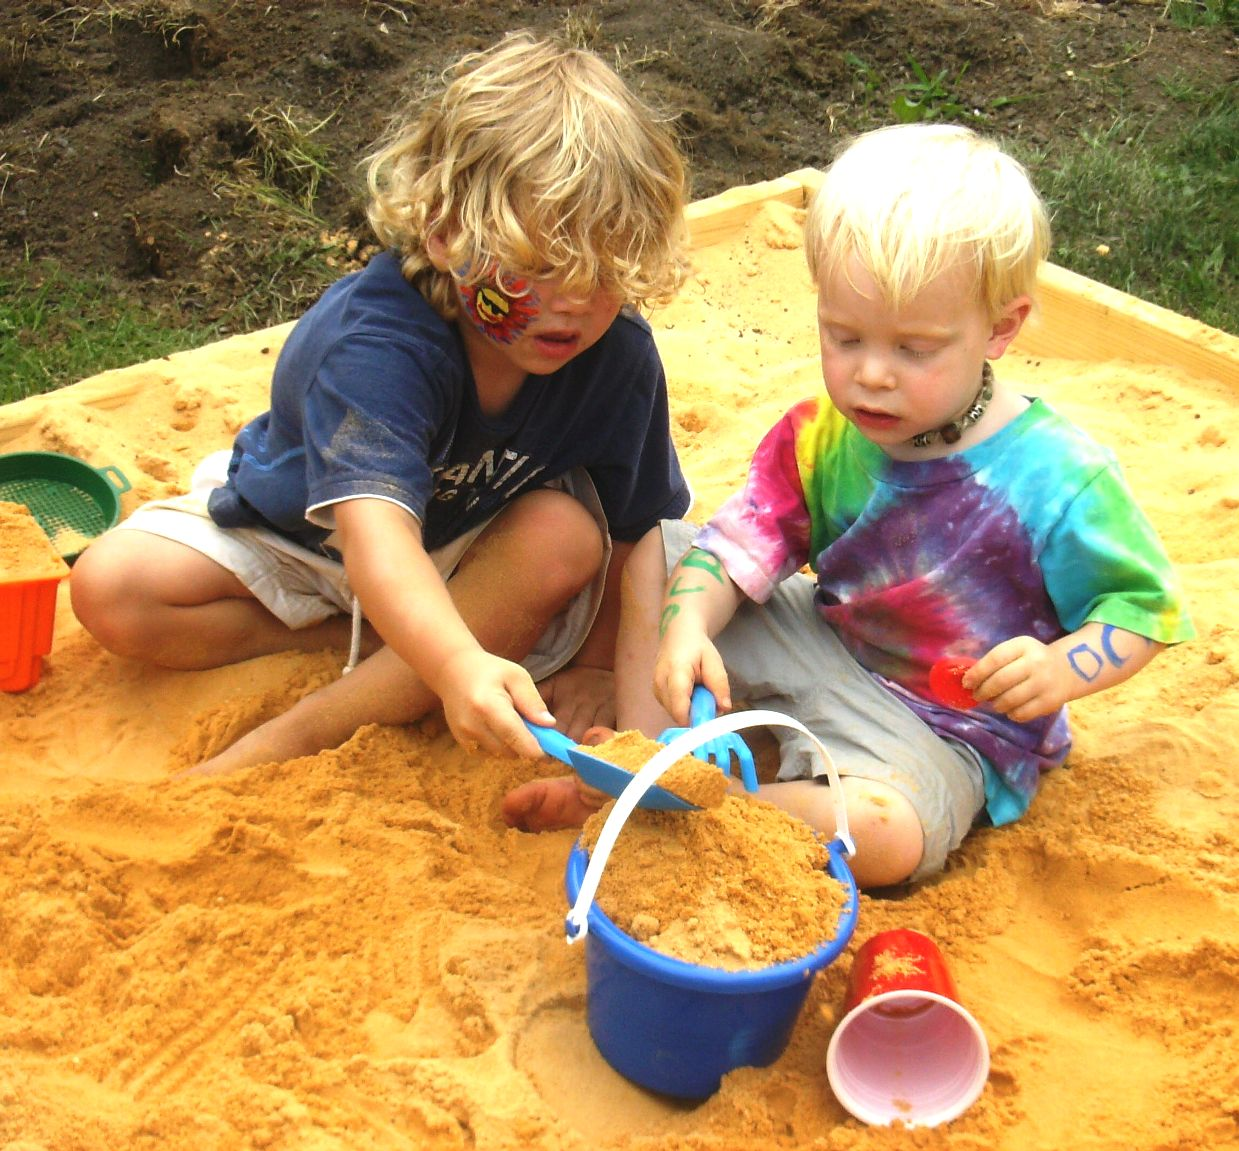 Relationship happiness illustrated by children playing in a sandbox.